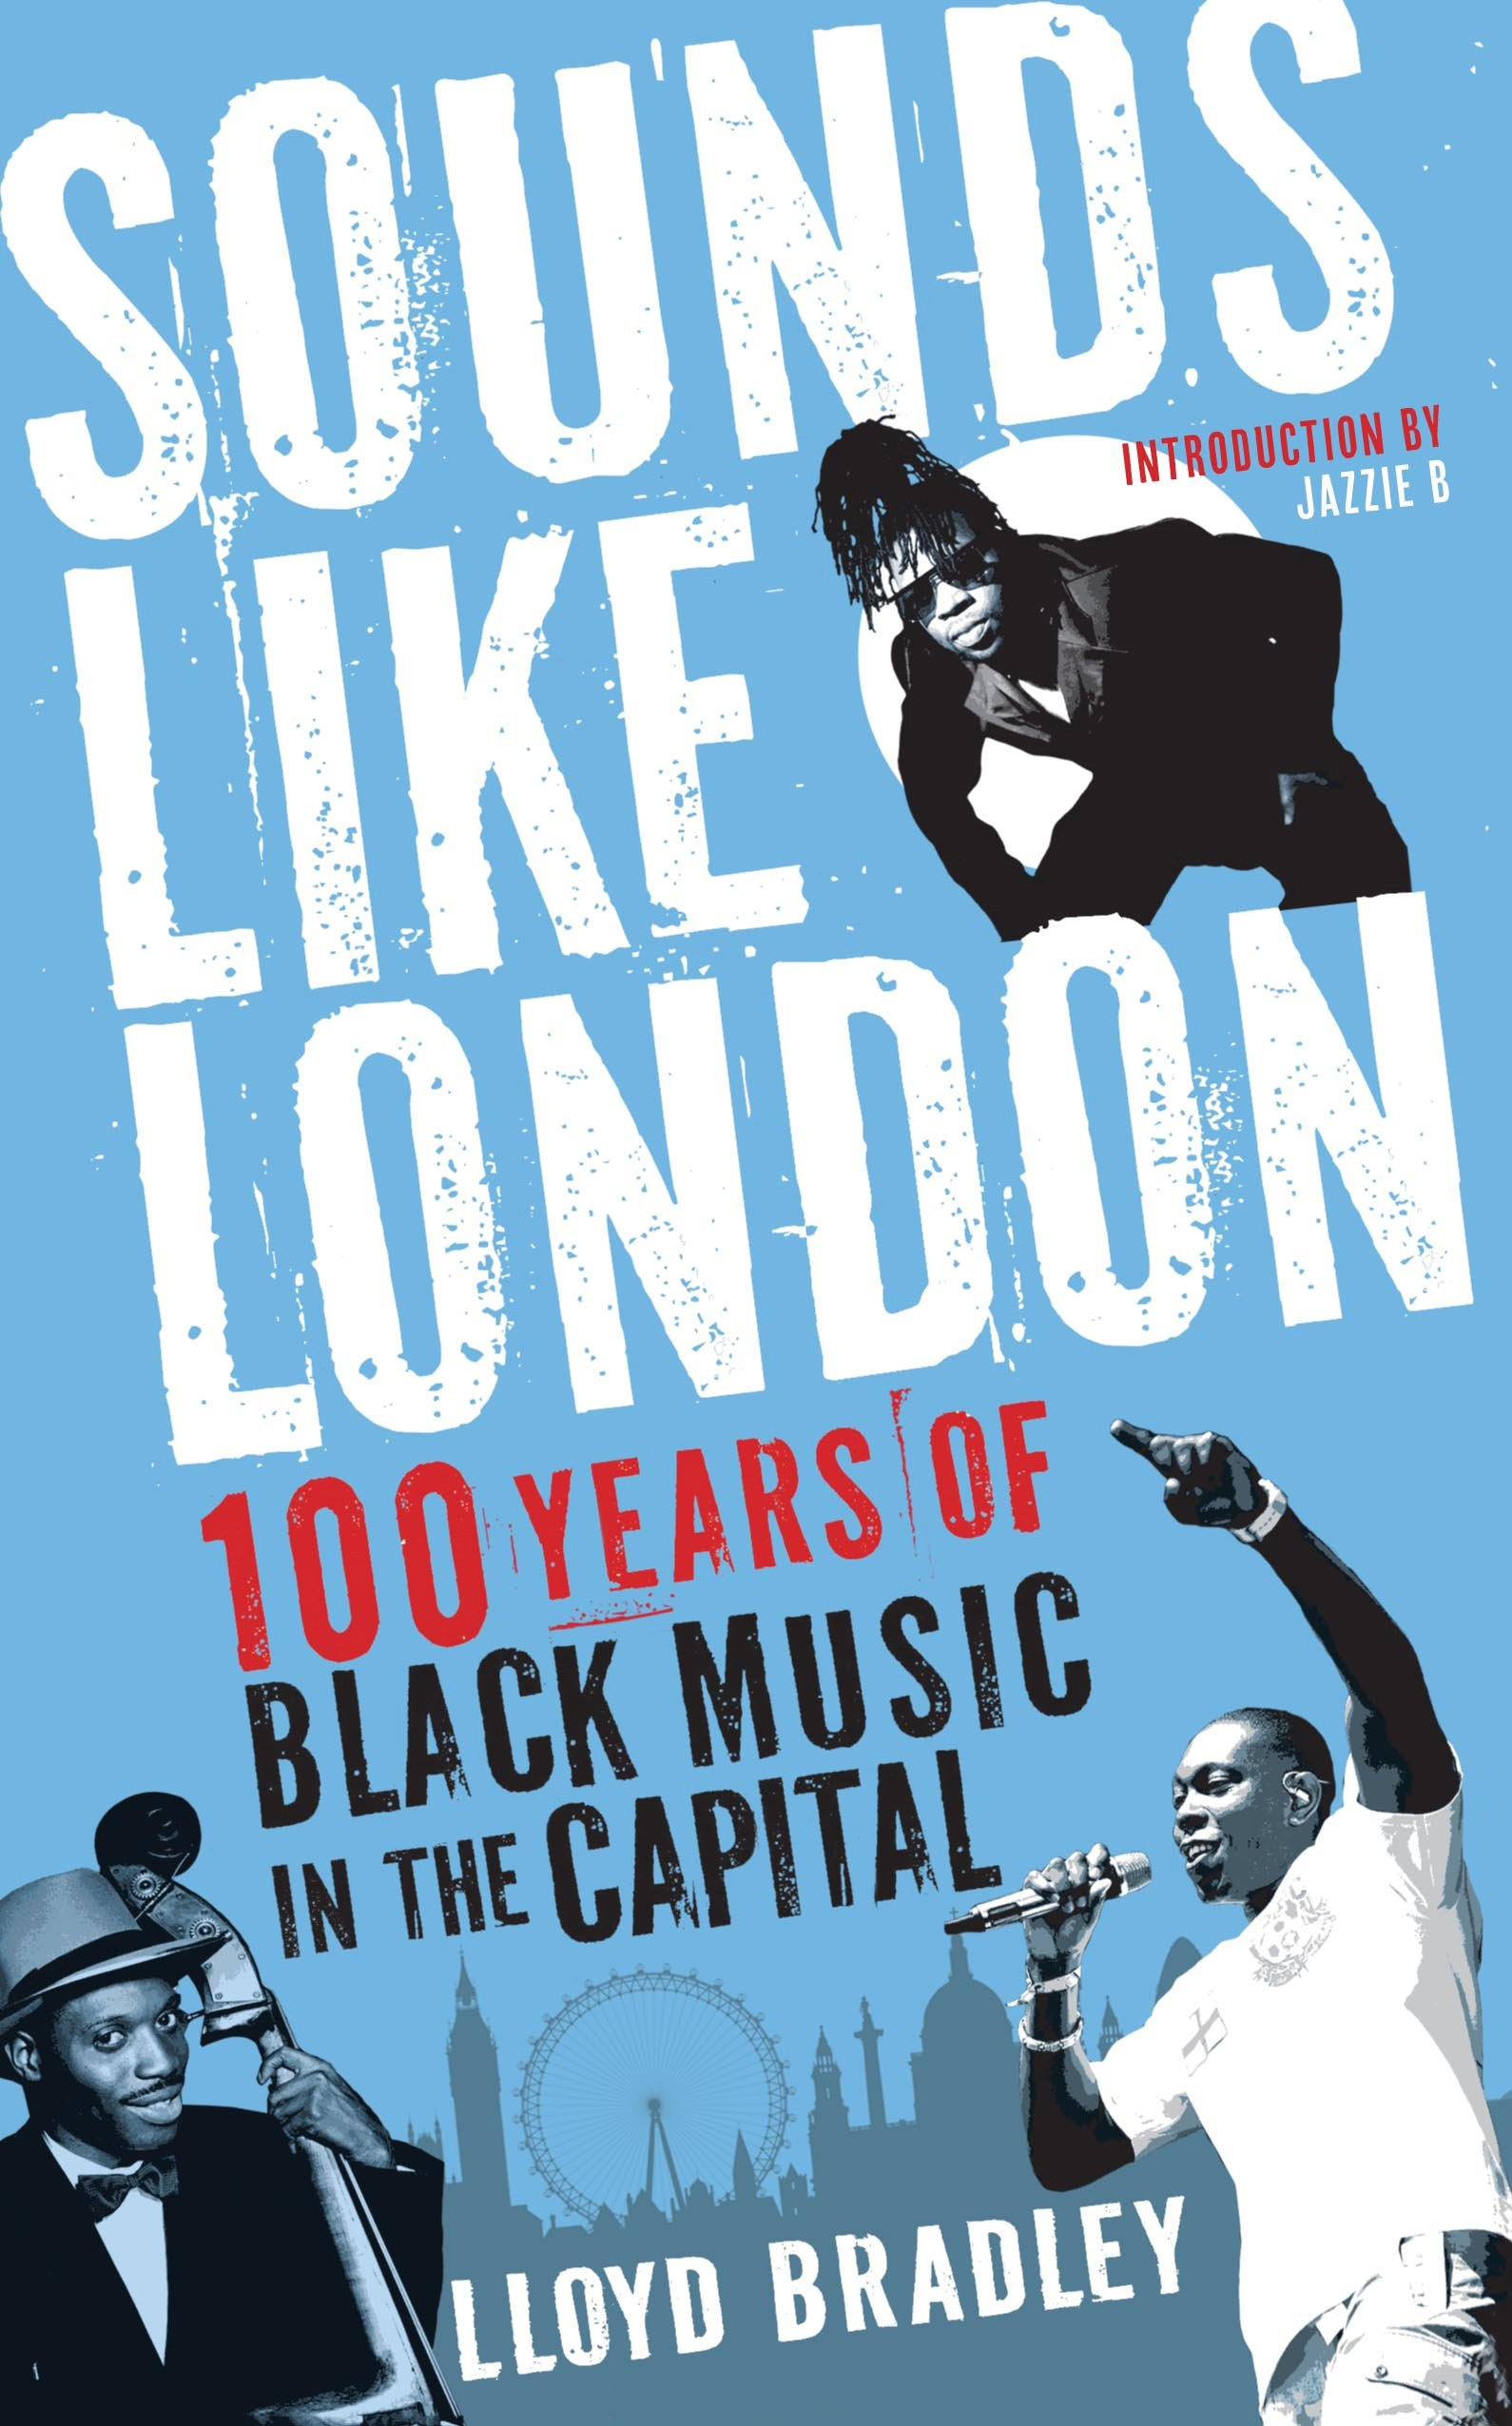 6fae68cce Sounds Like London: 100 Years of Black Music in the Capital Paperback – 8  Aug 2013